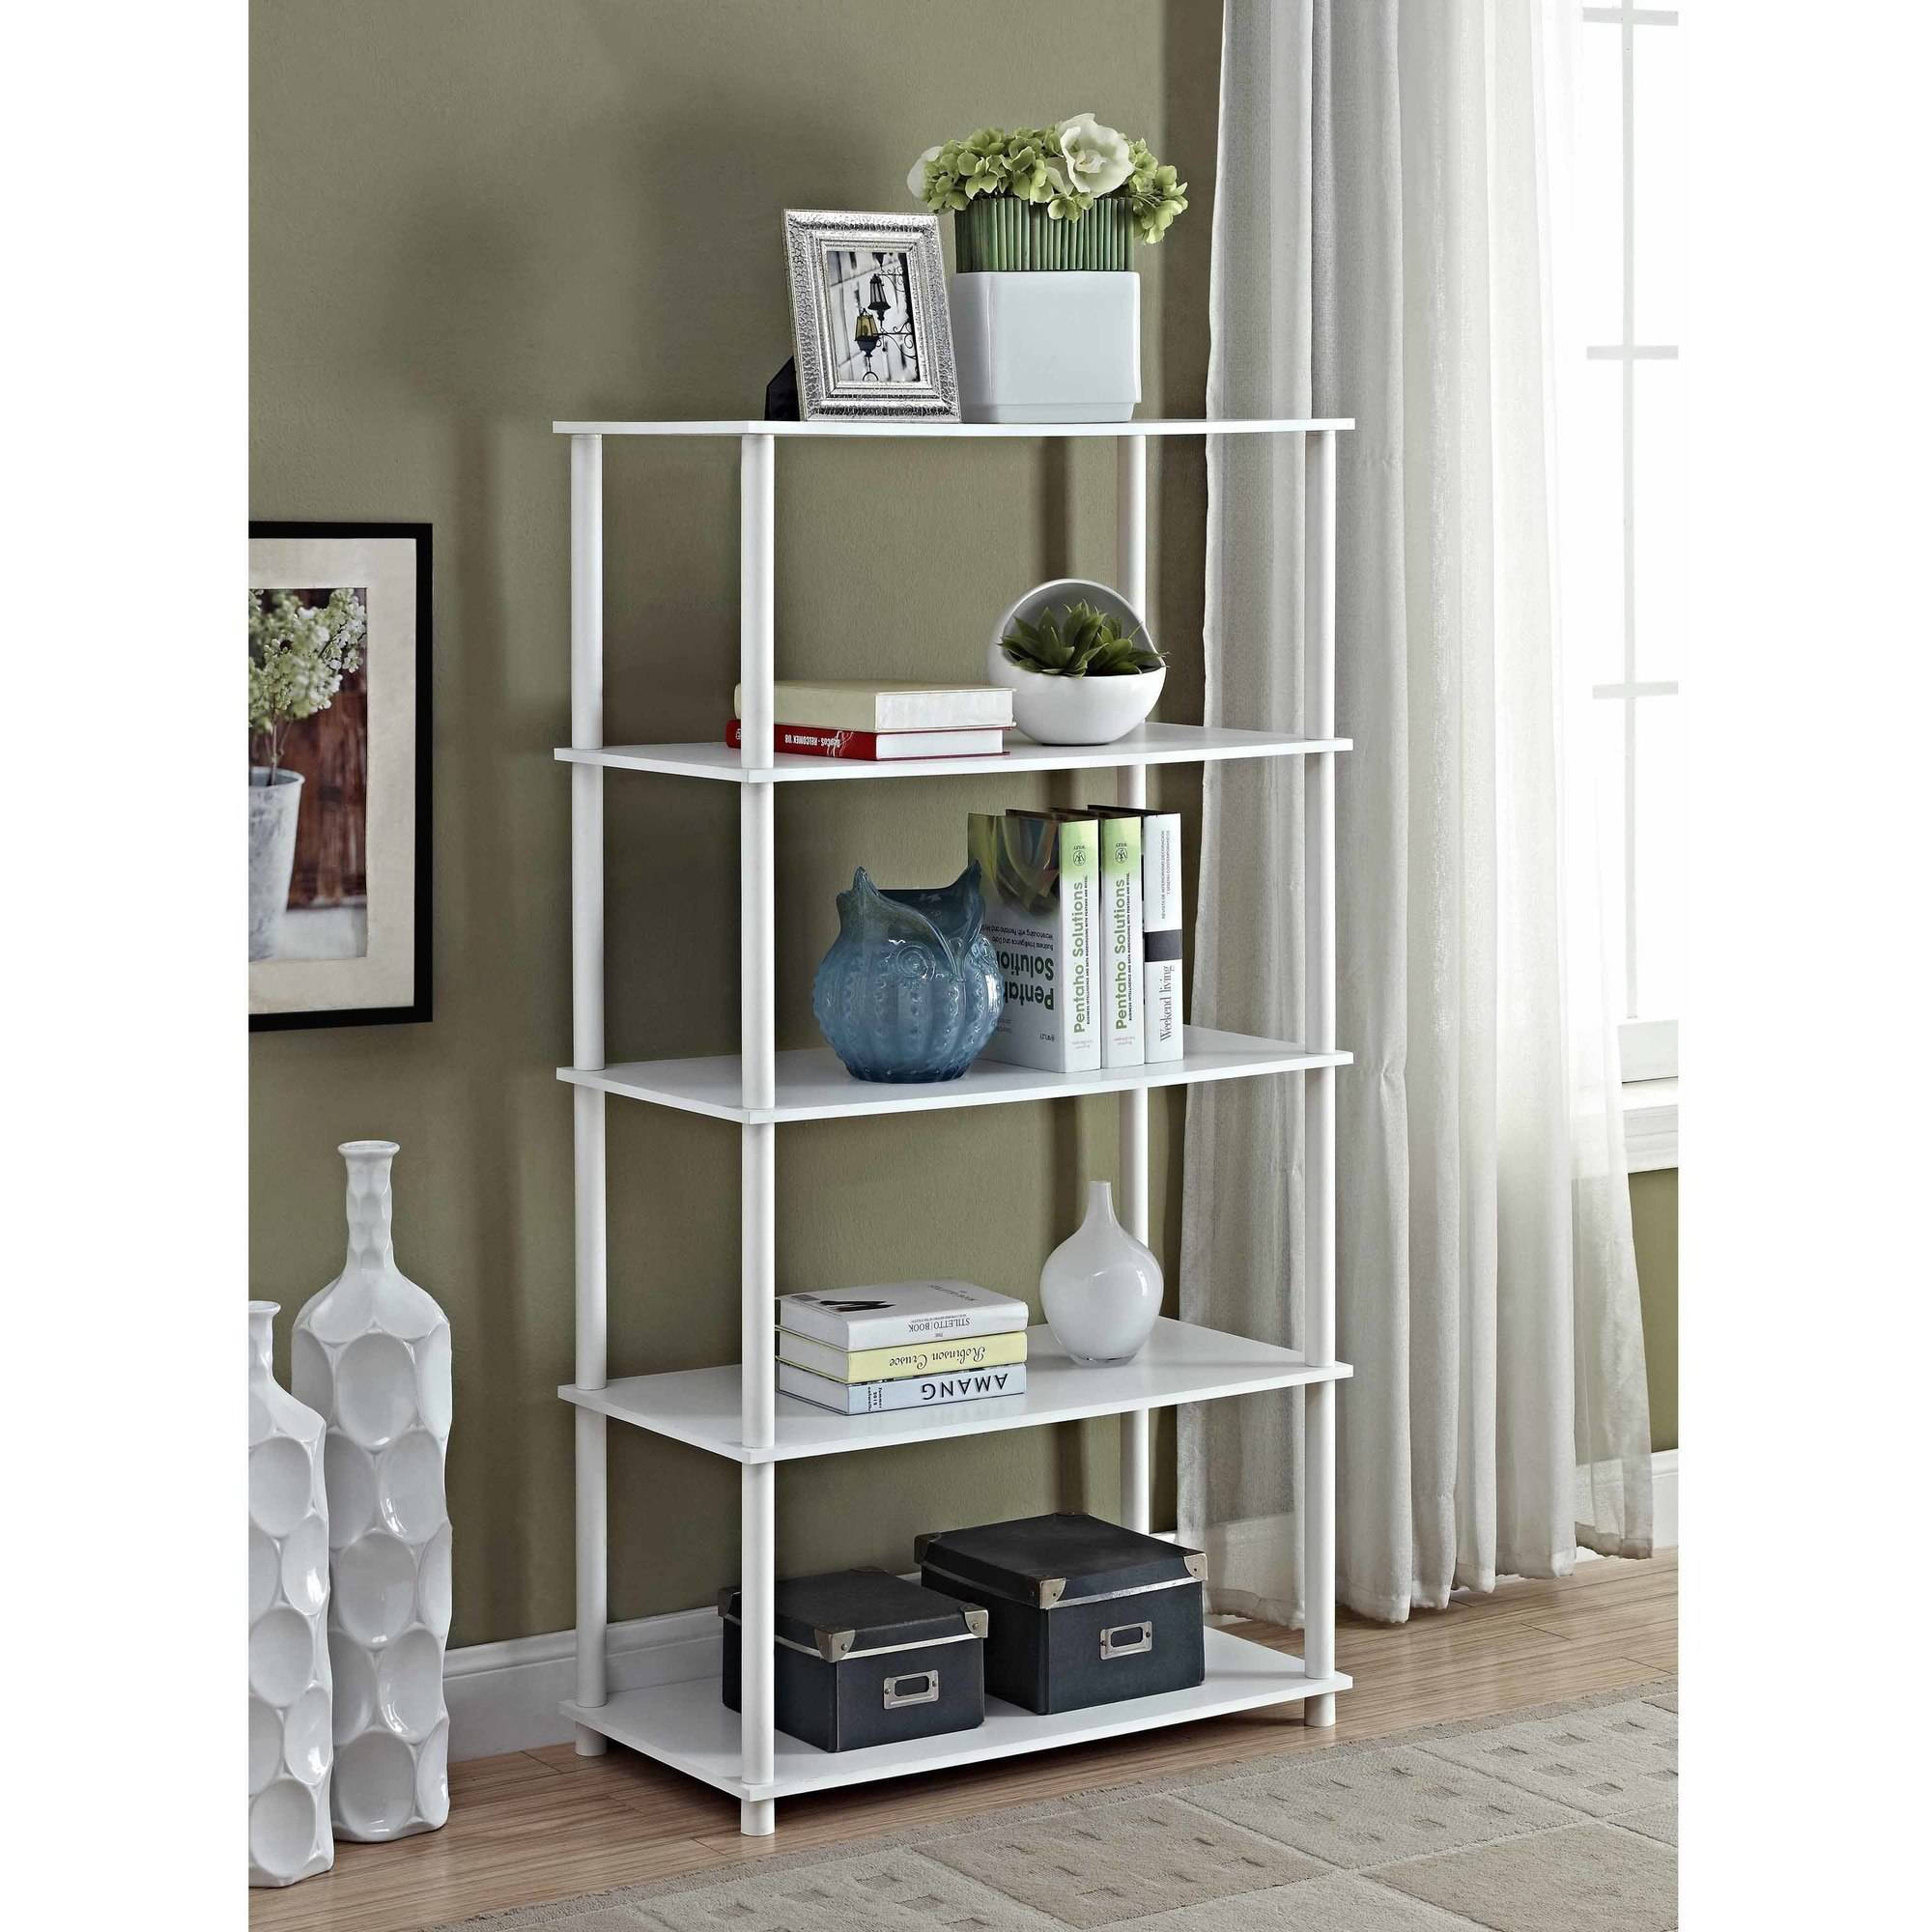 Mainstays No Tools Assembly 8 Cube Shelving Storage Unit, Multiple Colors